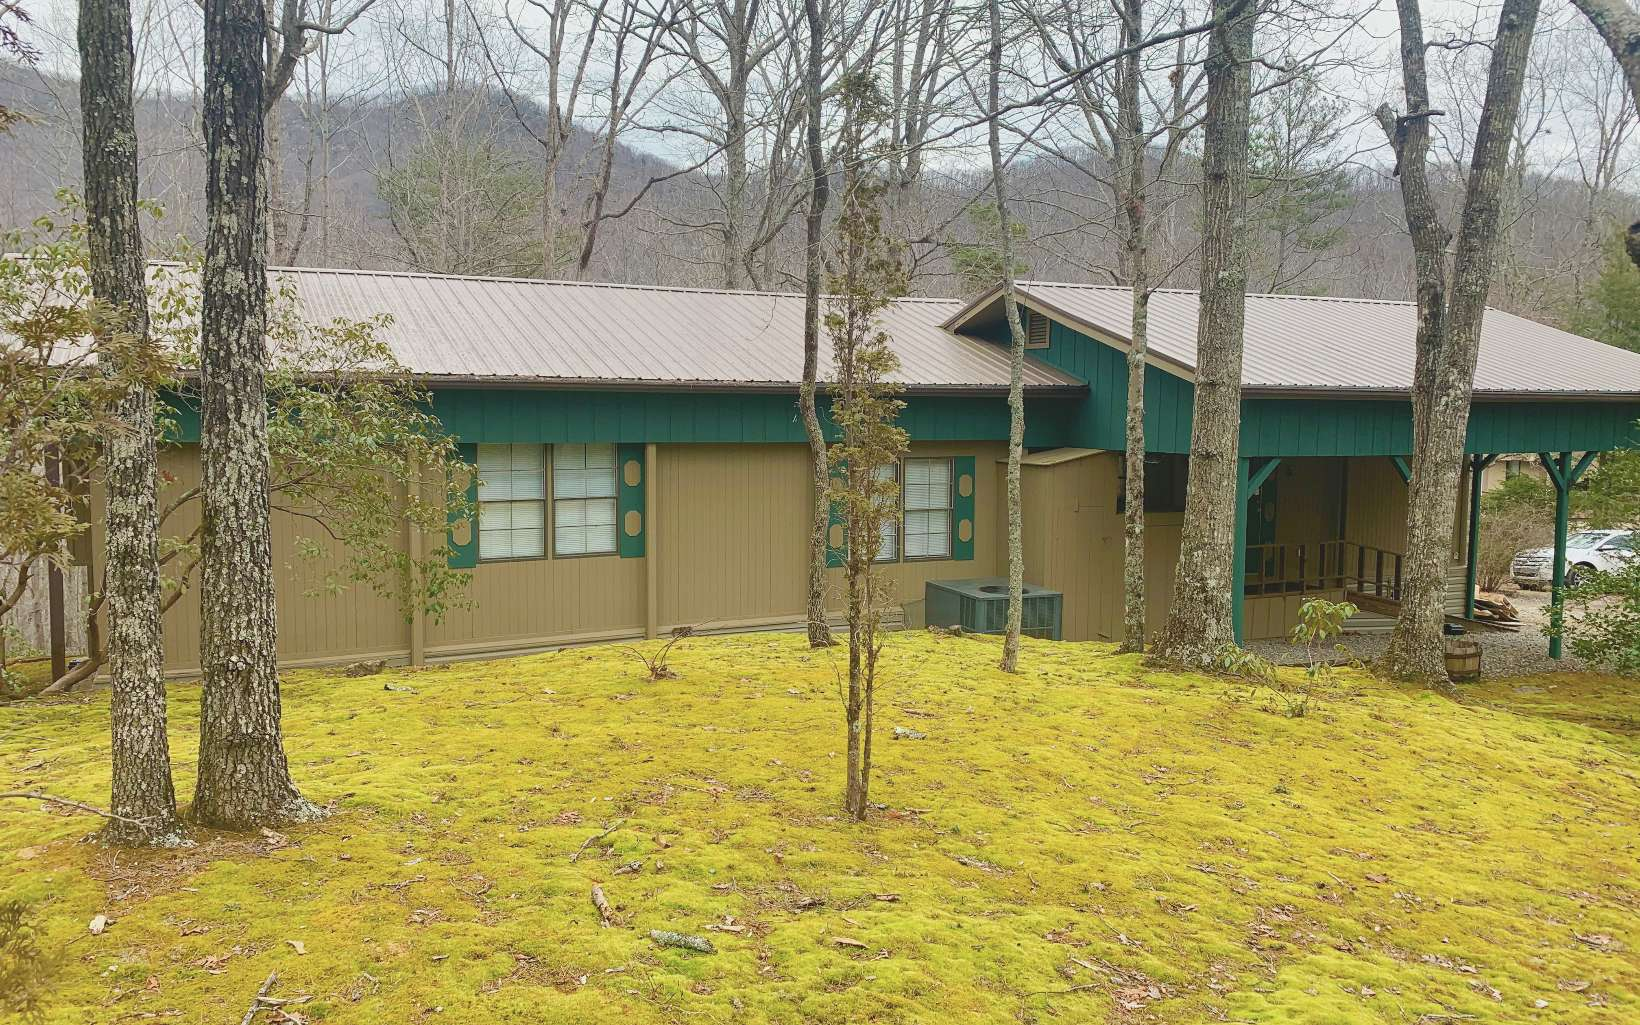 546 TOMMY ALEXANDER DR, Blairsville, Georgia 30512, 2 Bedrooms Bedrooms, ,2 BathroomsBathrooms,Single Family,For Sale,546 TOMMY ALEXANDER DR,304101